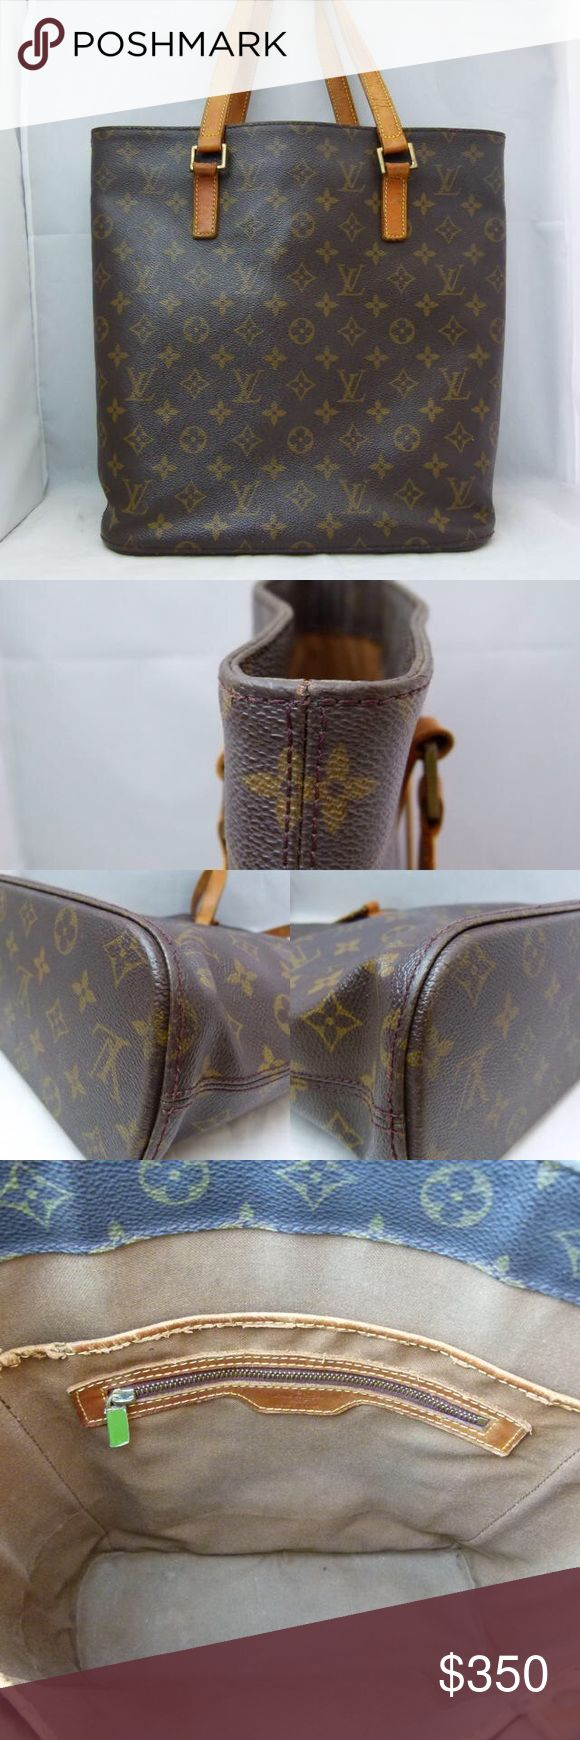 Louise Vuitton Monogram vavin GM bag Used it only for 1 years. It is very good condition! GM size, so it is big. Louis Vuitton Bags Totes